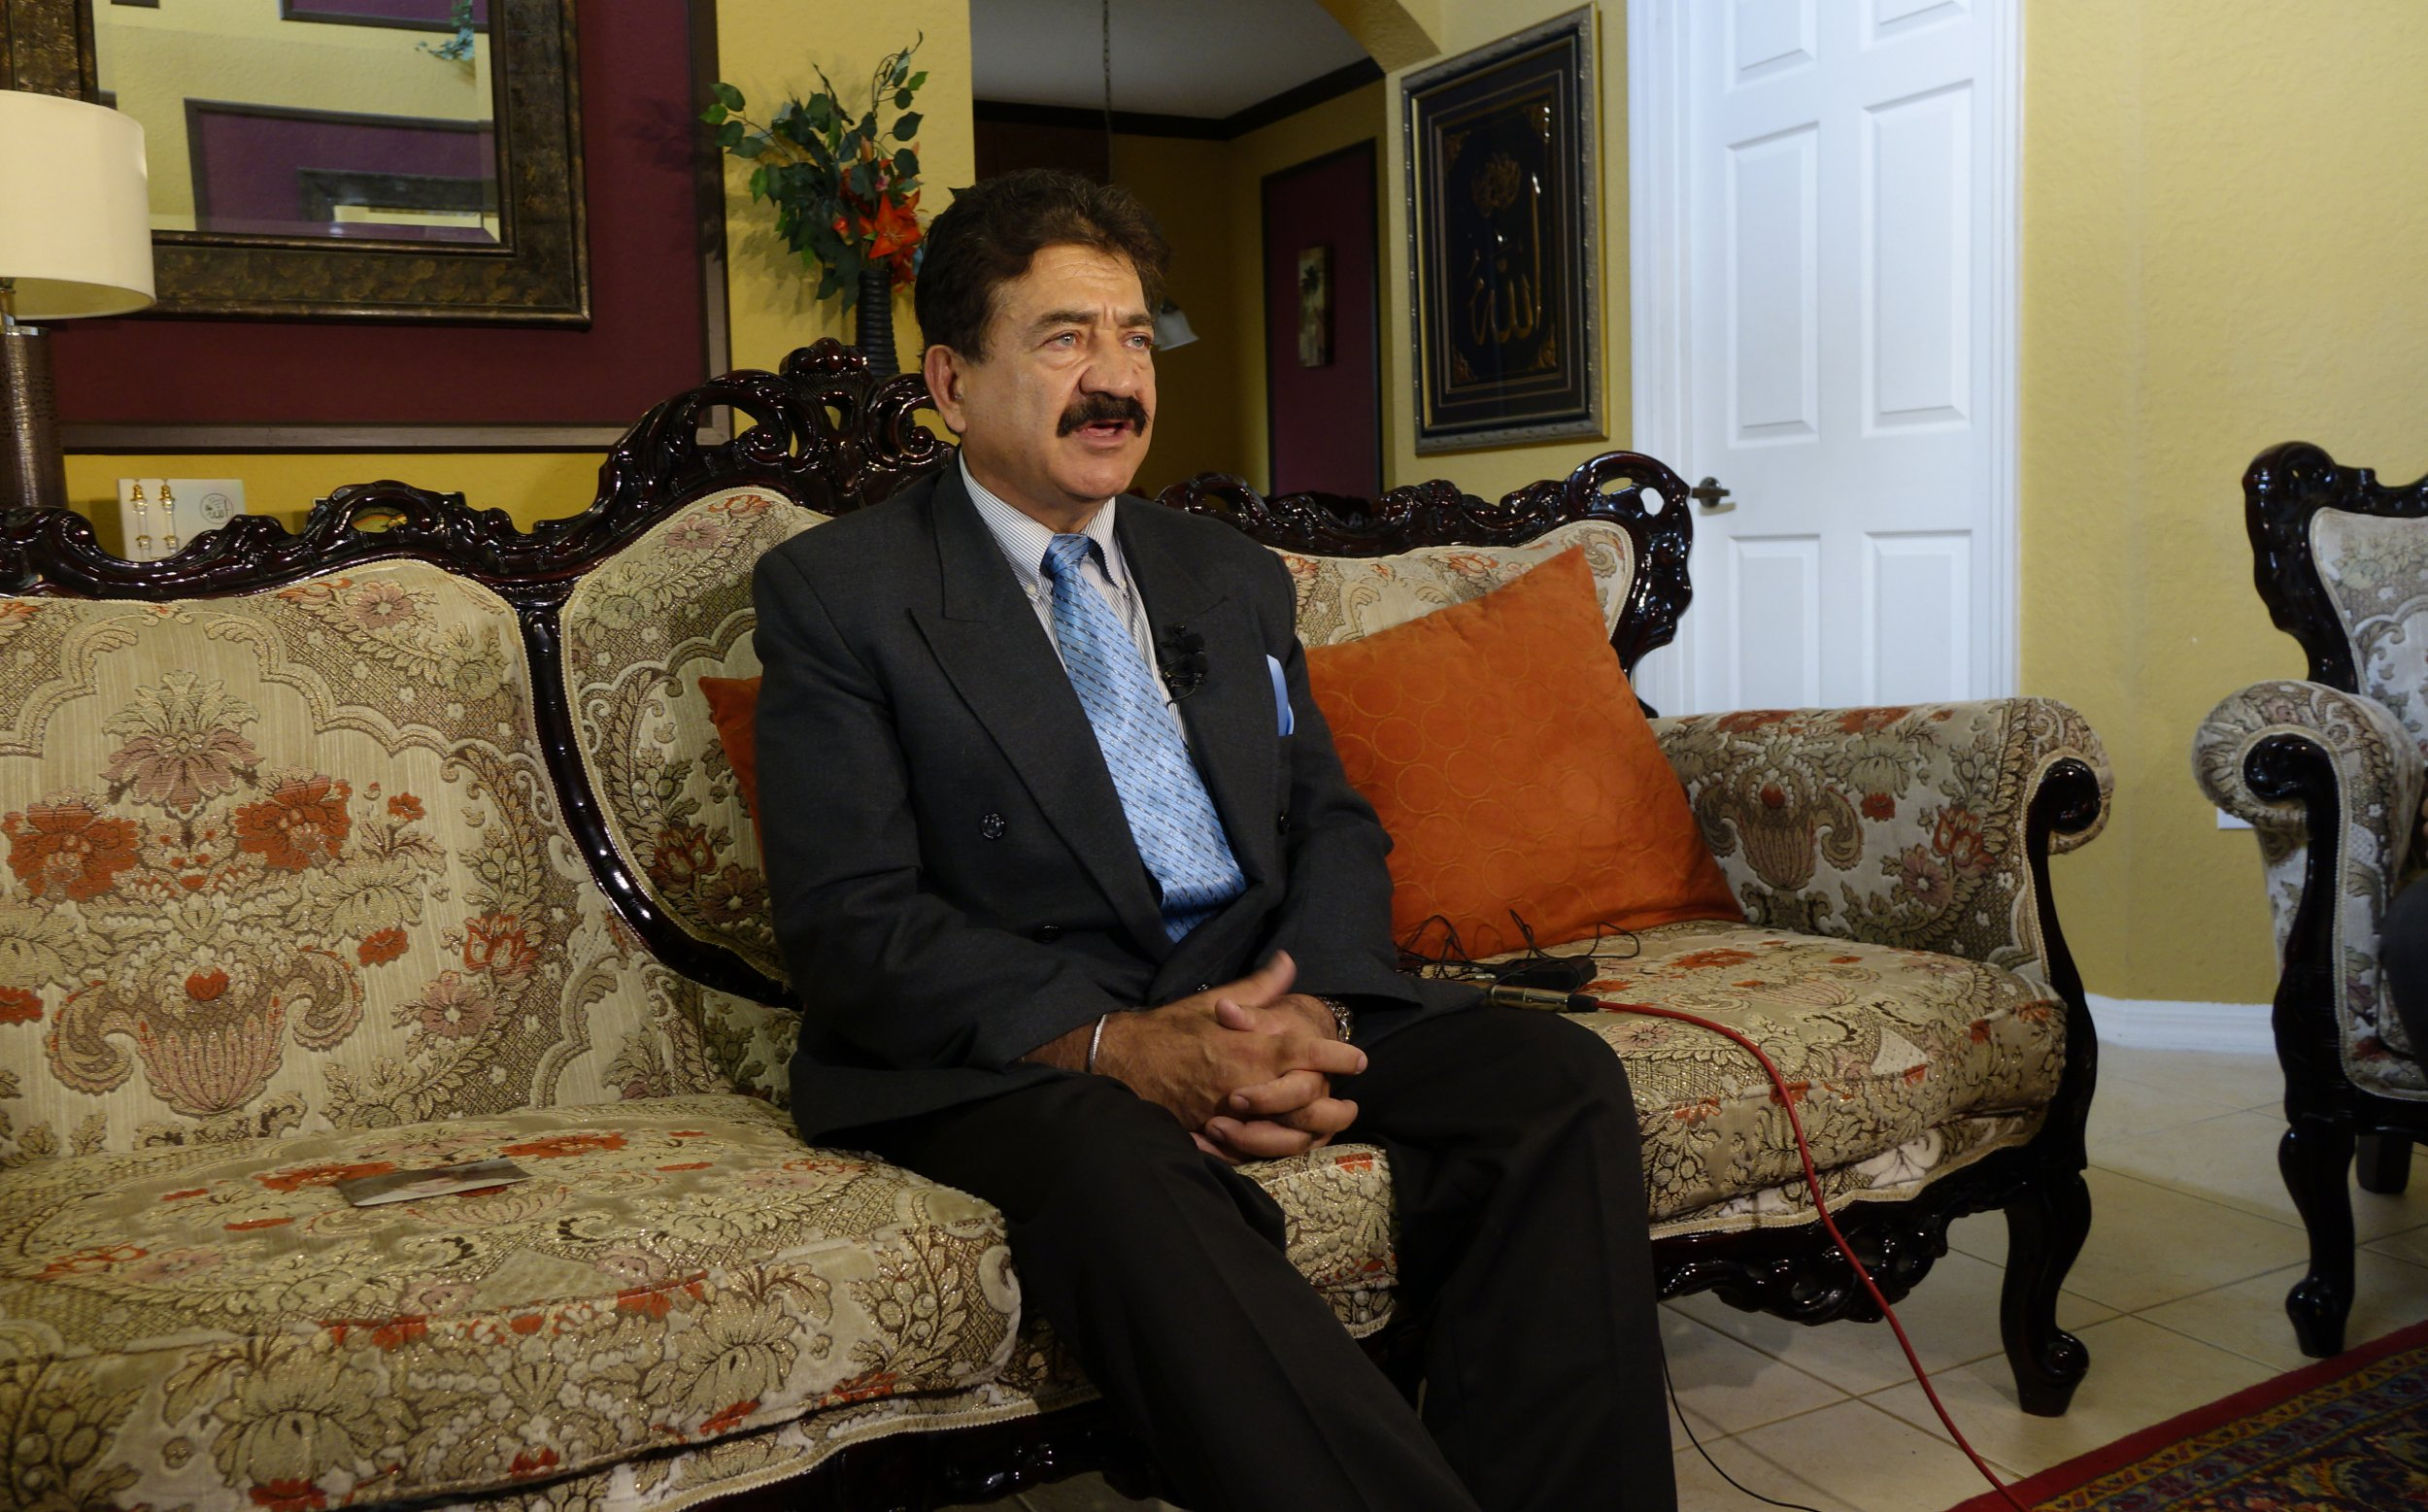 Saddique Mir Mateen, father of Orlando shooter Omar Mateen, speaks to the media at his home in Port St. Lucie, Monday, June 13, 2016. (Joe Cavaretta/Orlando Sentinel via AP) MAGS OUT; NO SALES; MANDATORY CREDIT